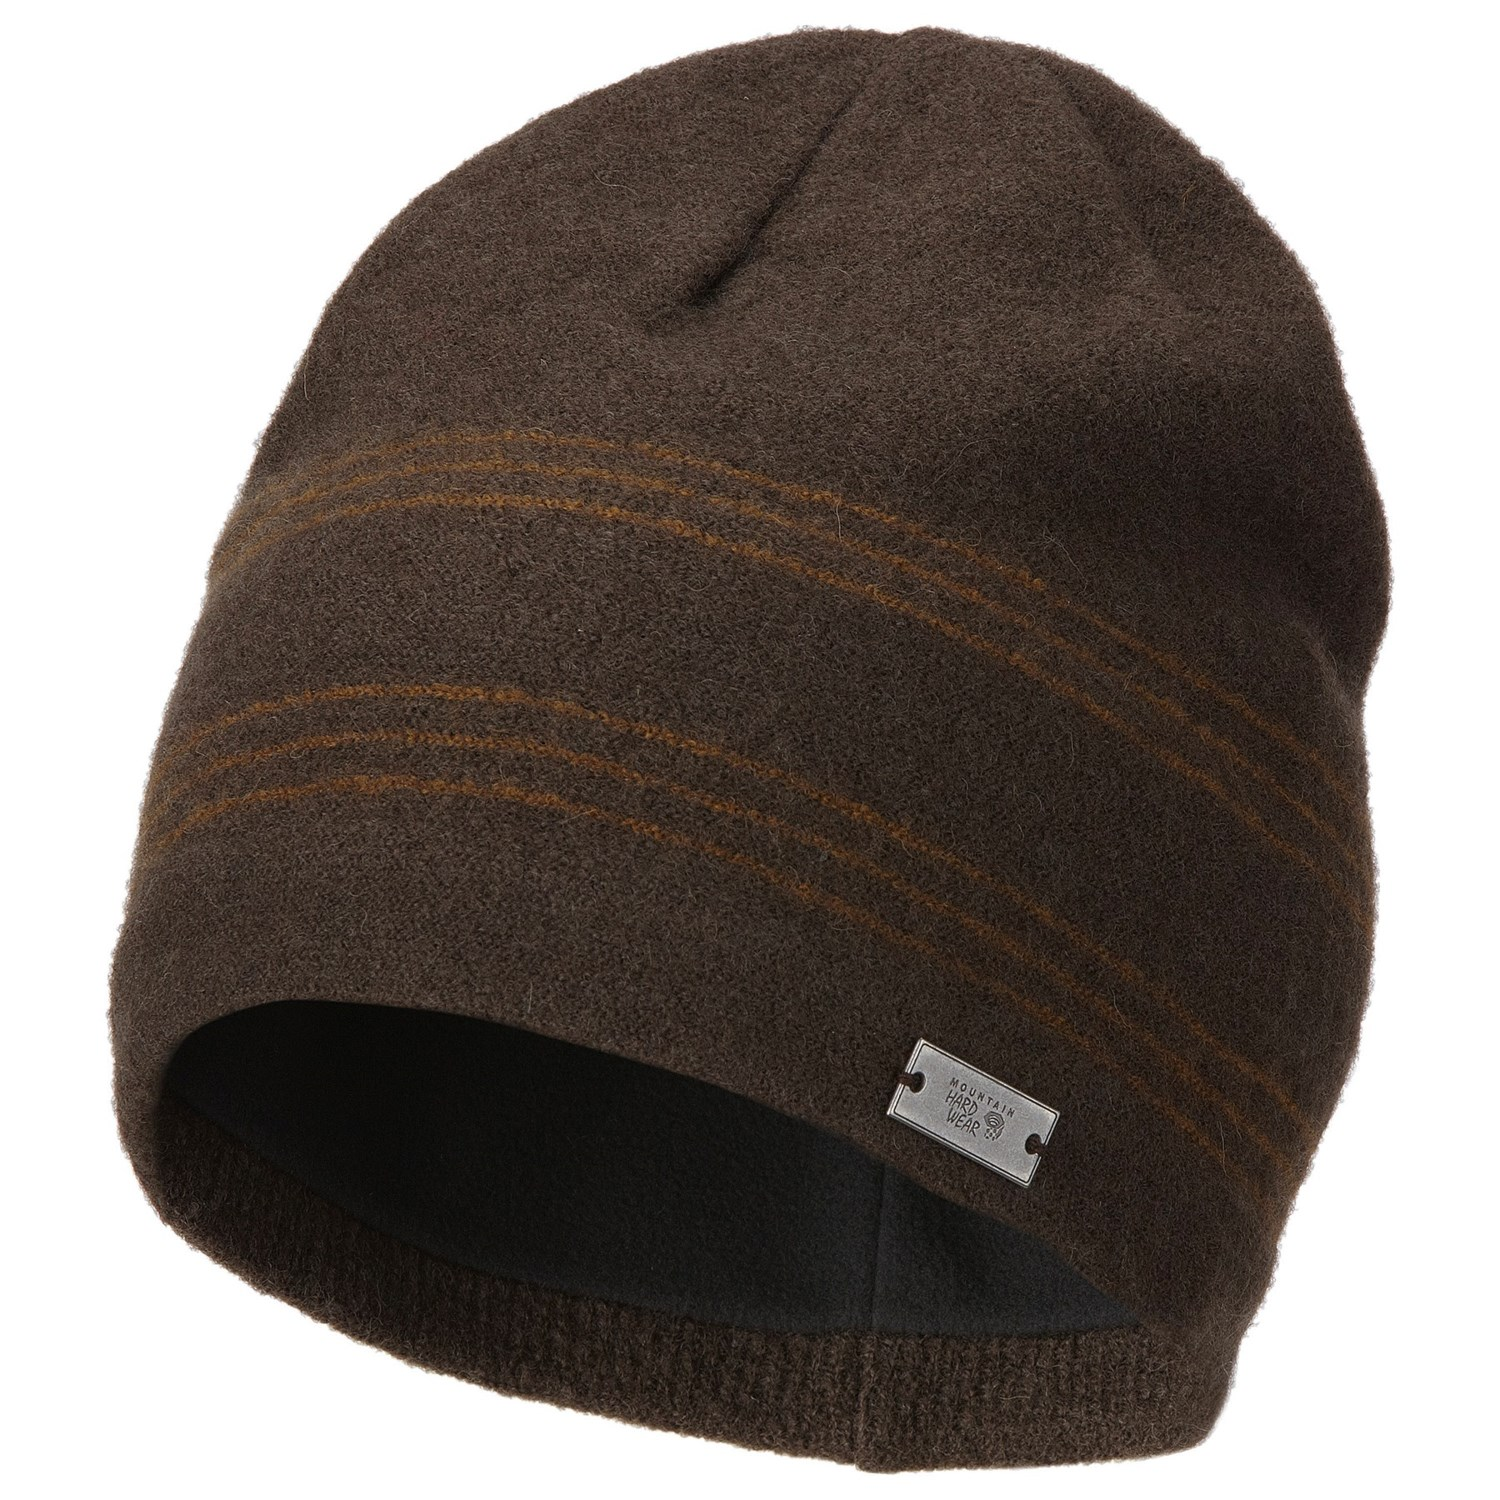 Keep your head warm and dry with men's wool hats & caps from Pendleton. Shop men's hats & beanies now.